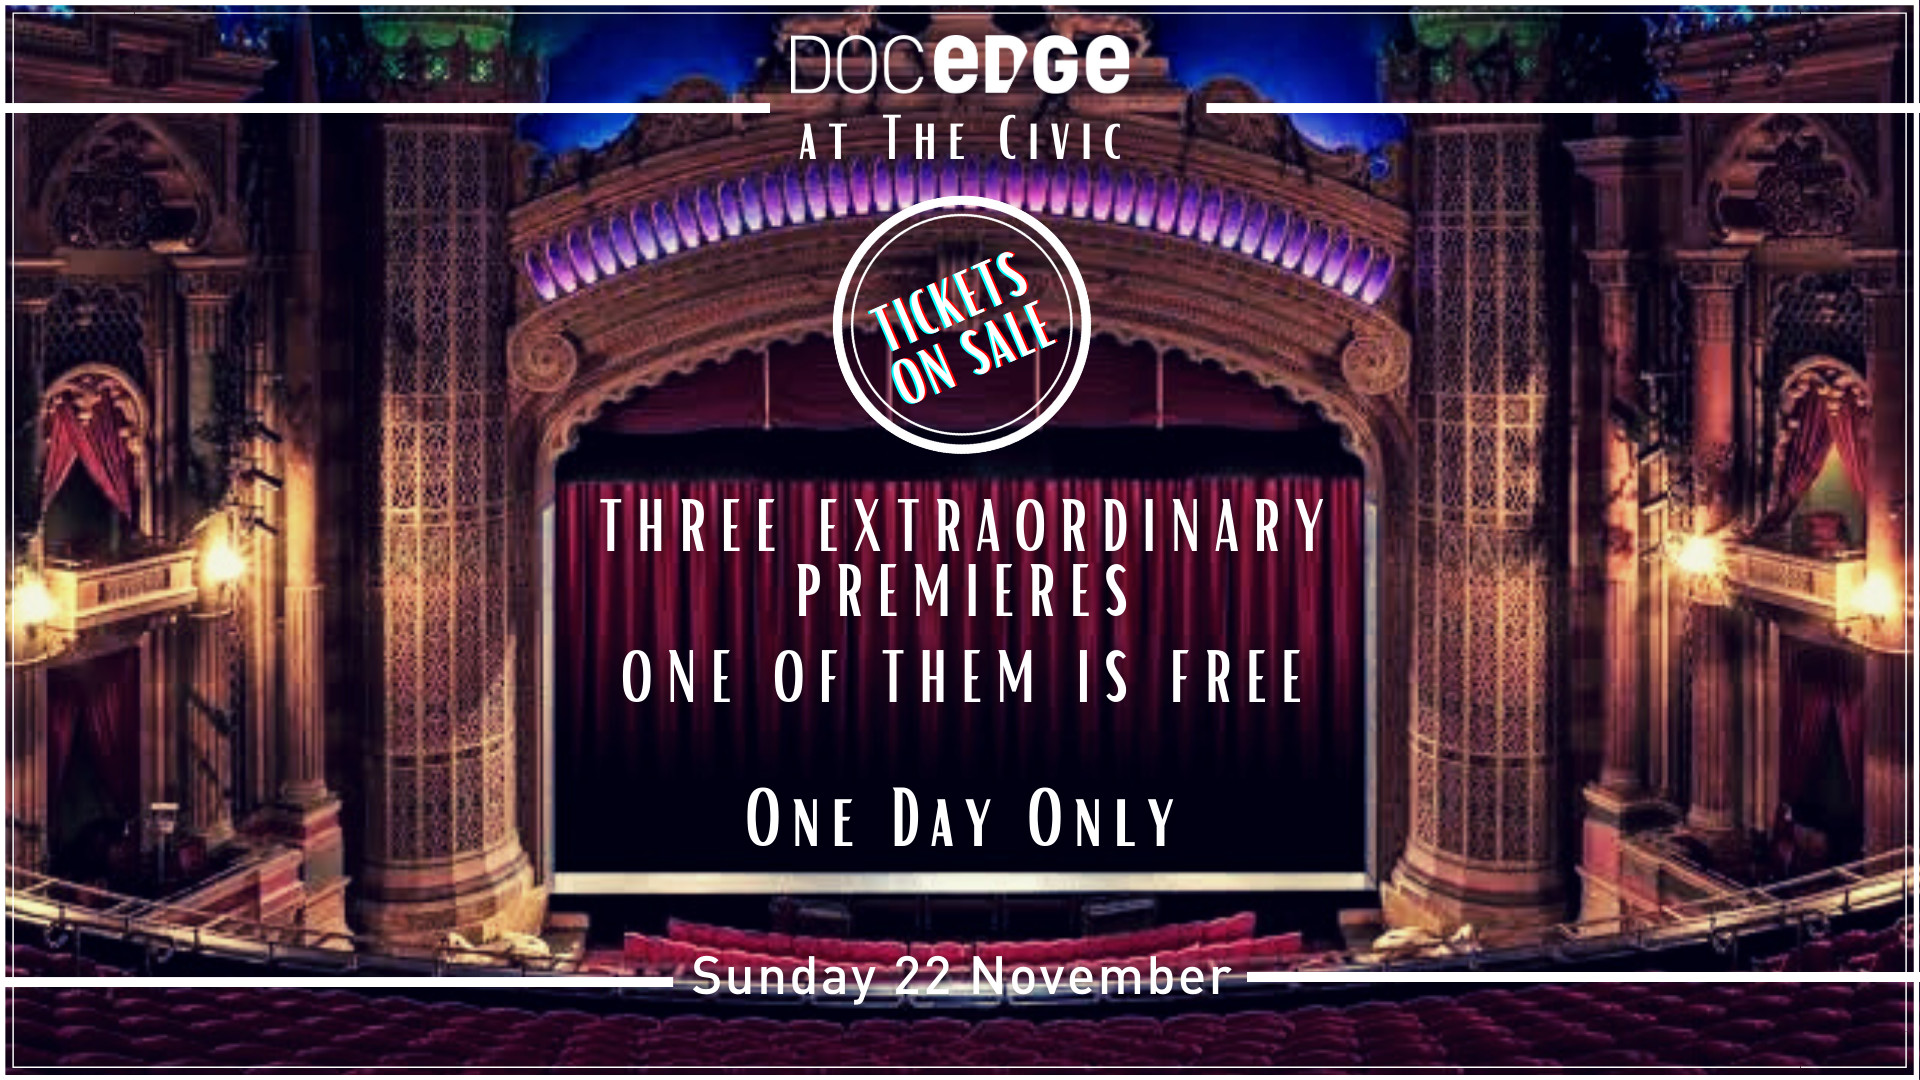 Doc Edge at The Civic, three extraordinary premieres, one of them is free.